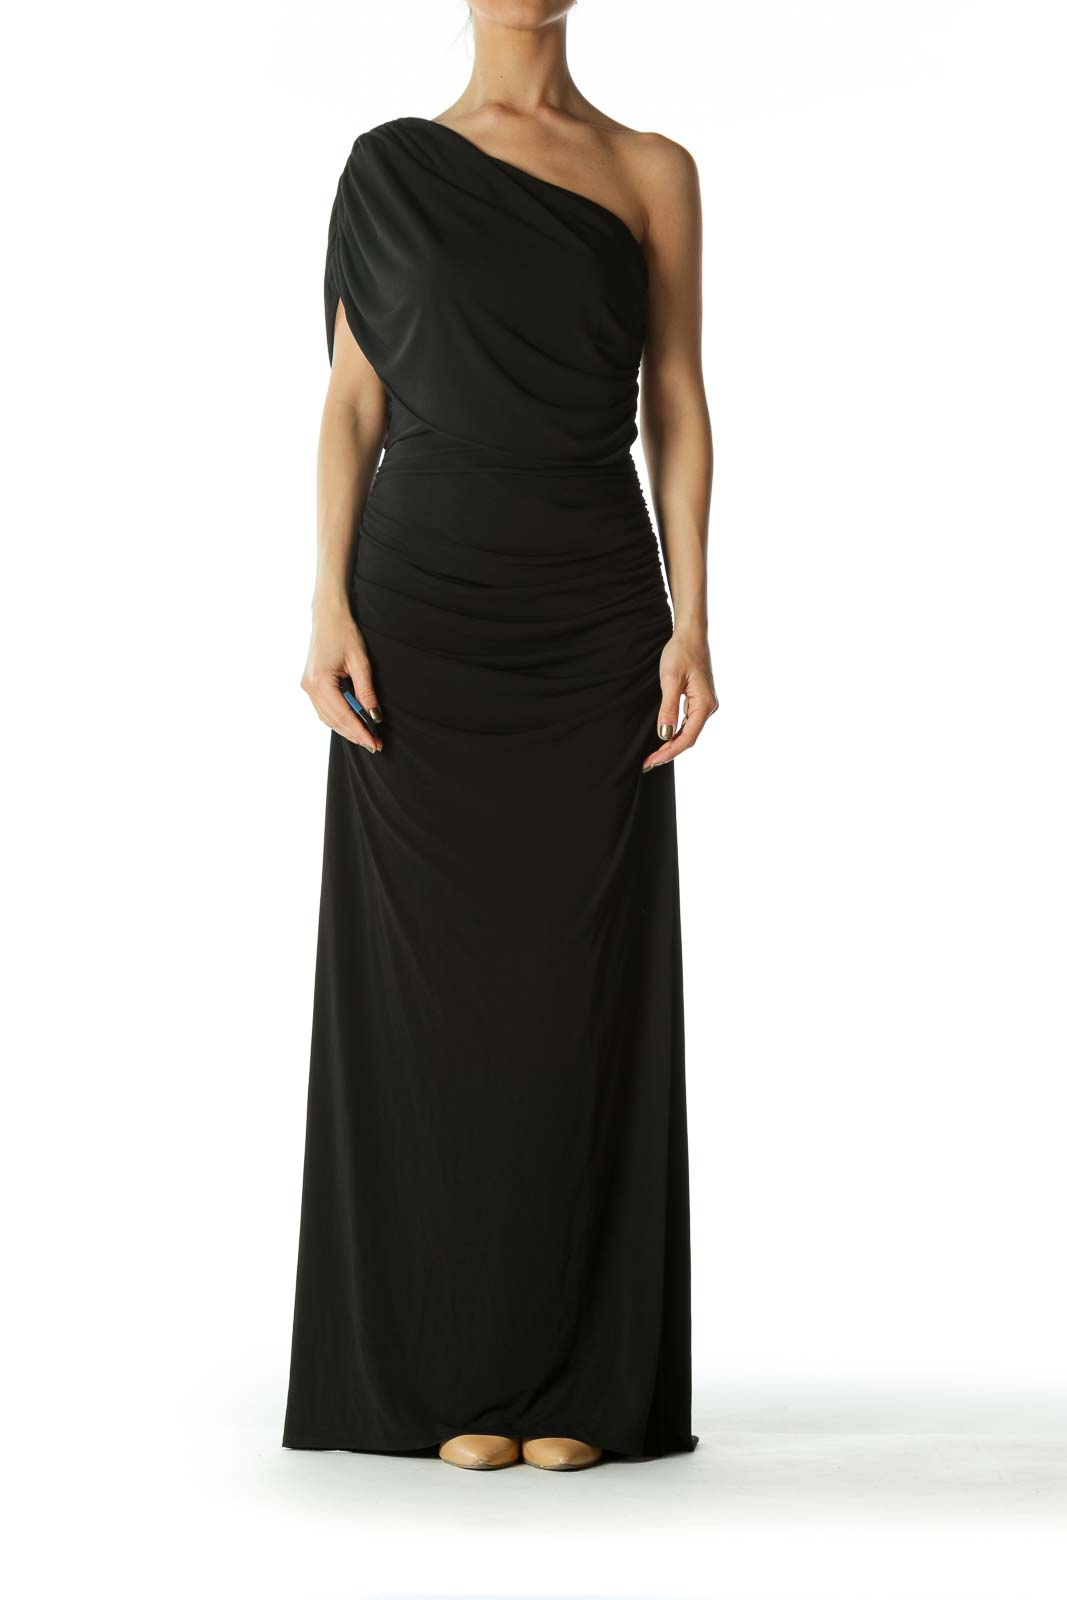 Black One Shoulder Evening Dress With Bejeweled Strap